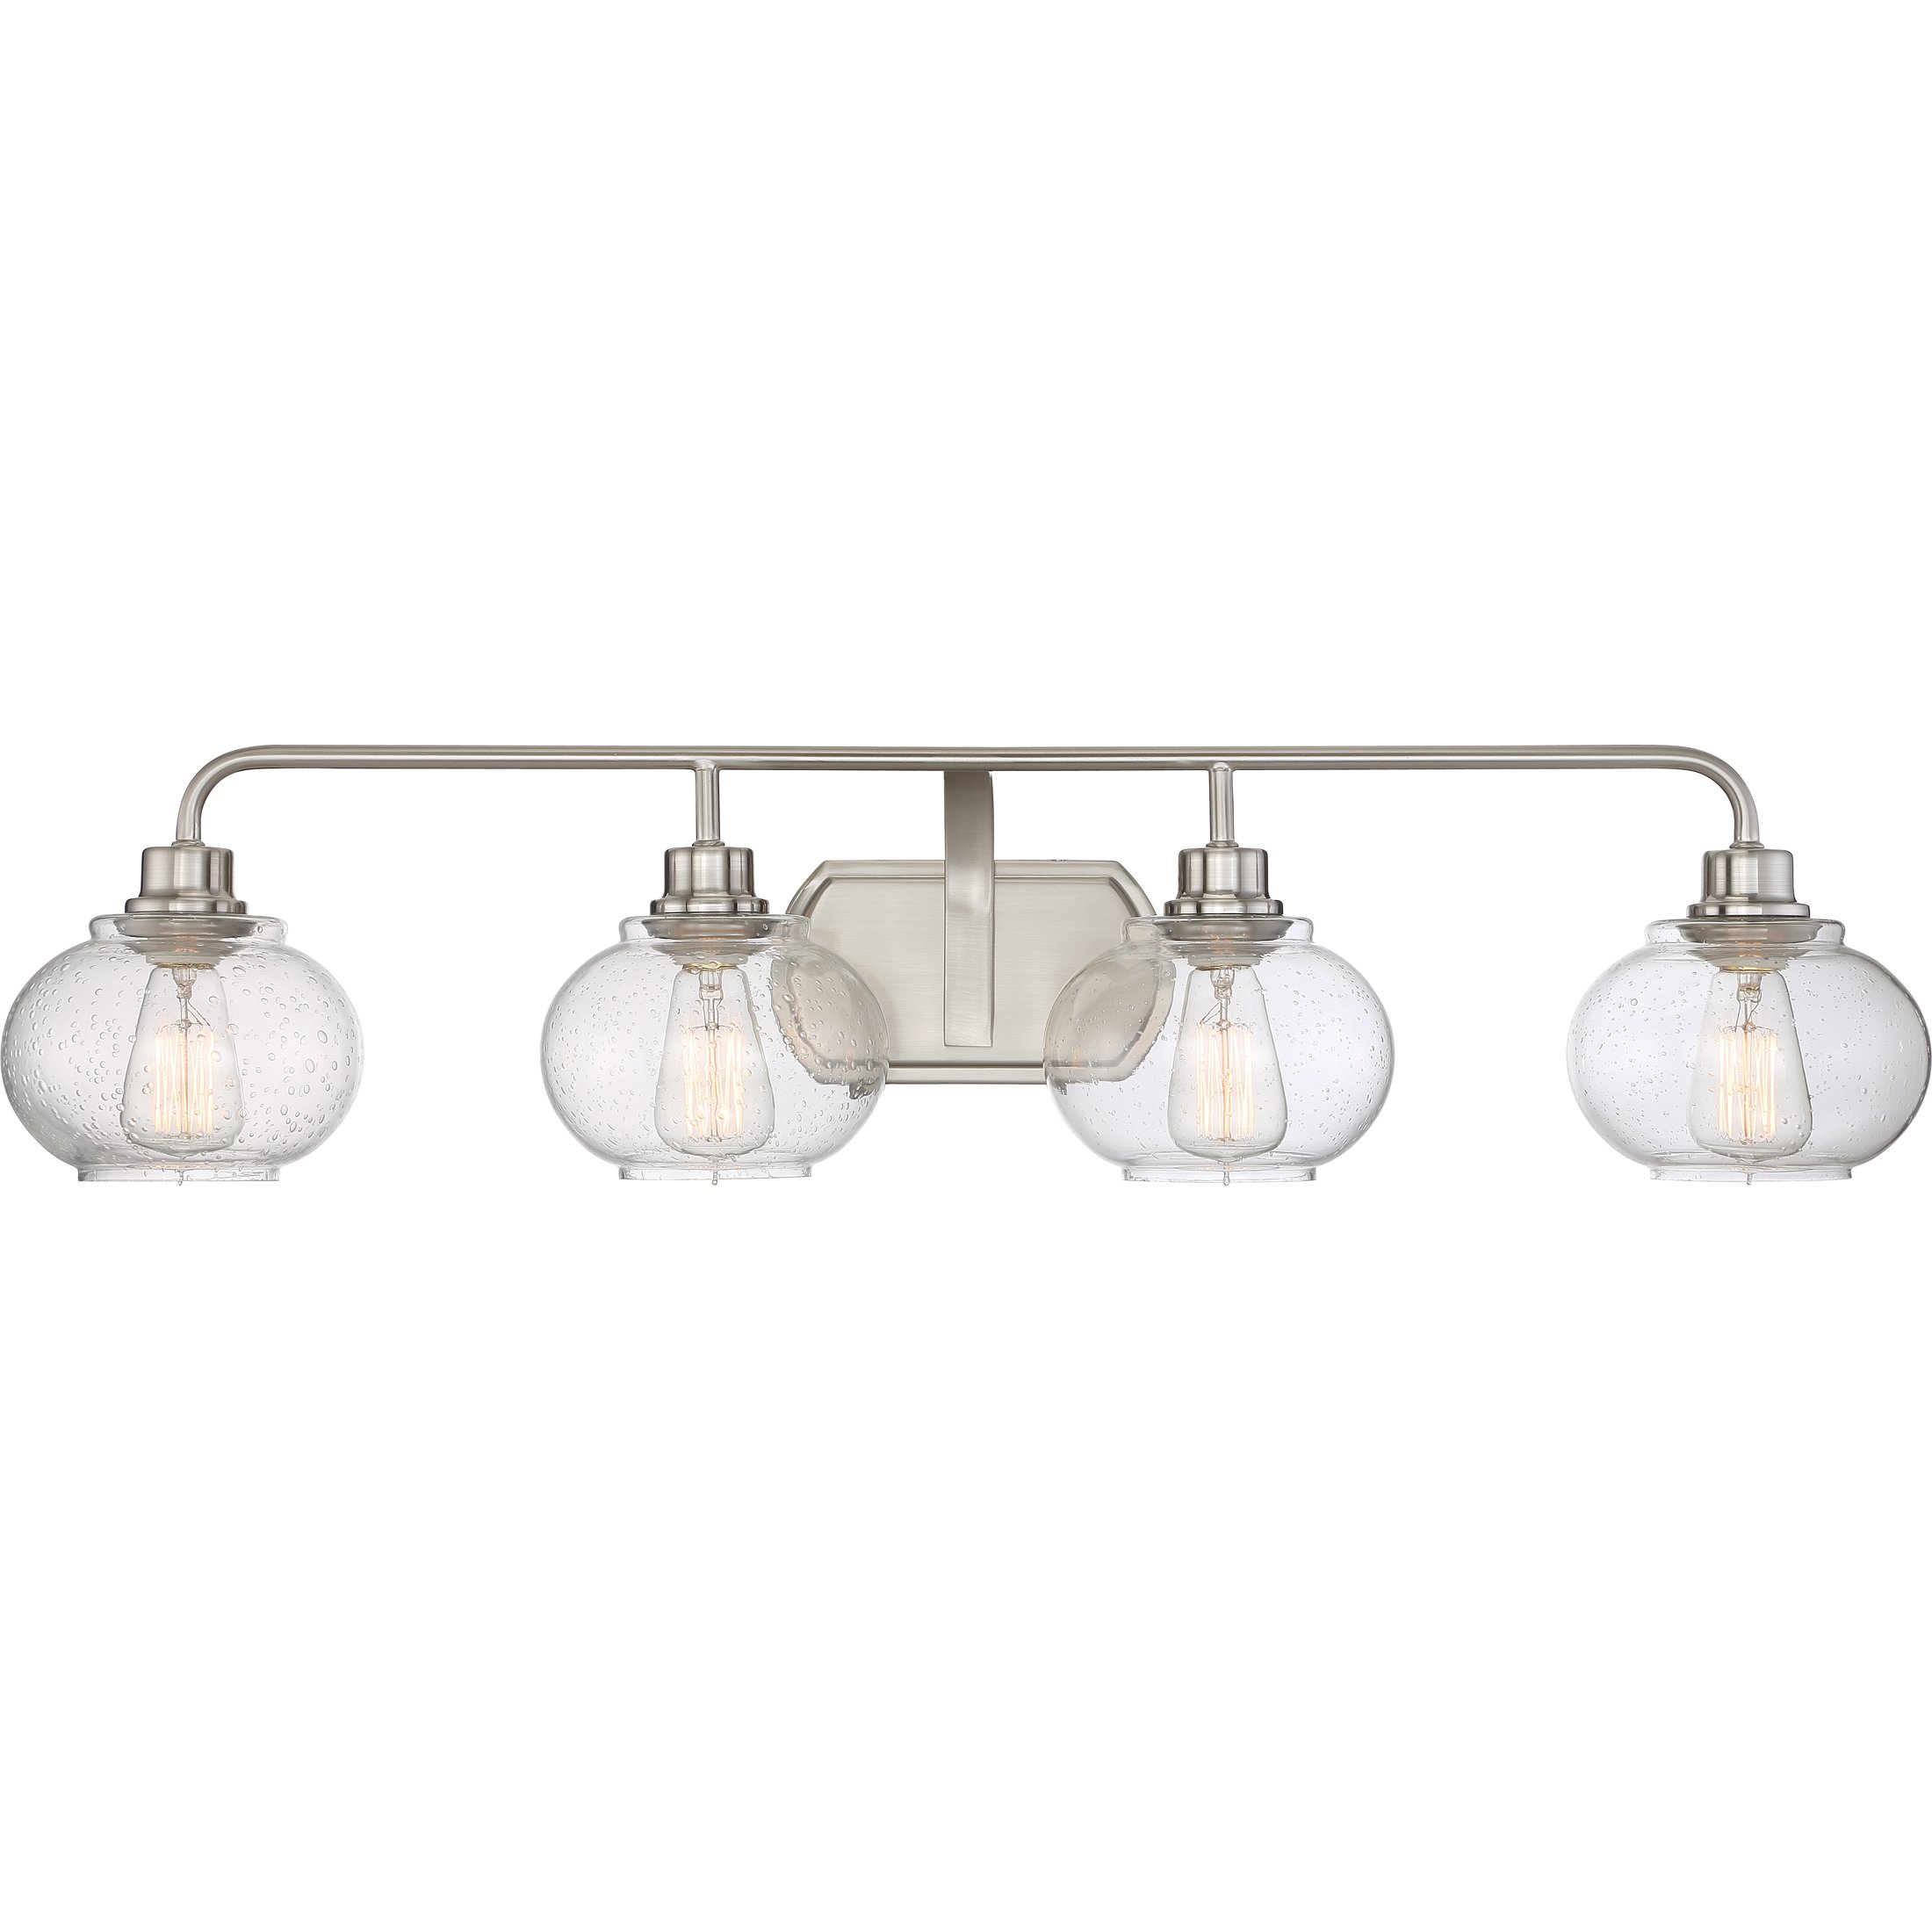 Quoizel TRG8604BN Four Light Bath Light